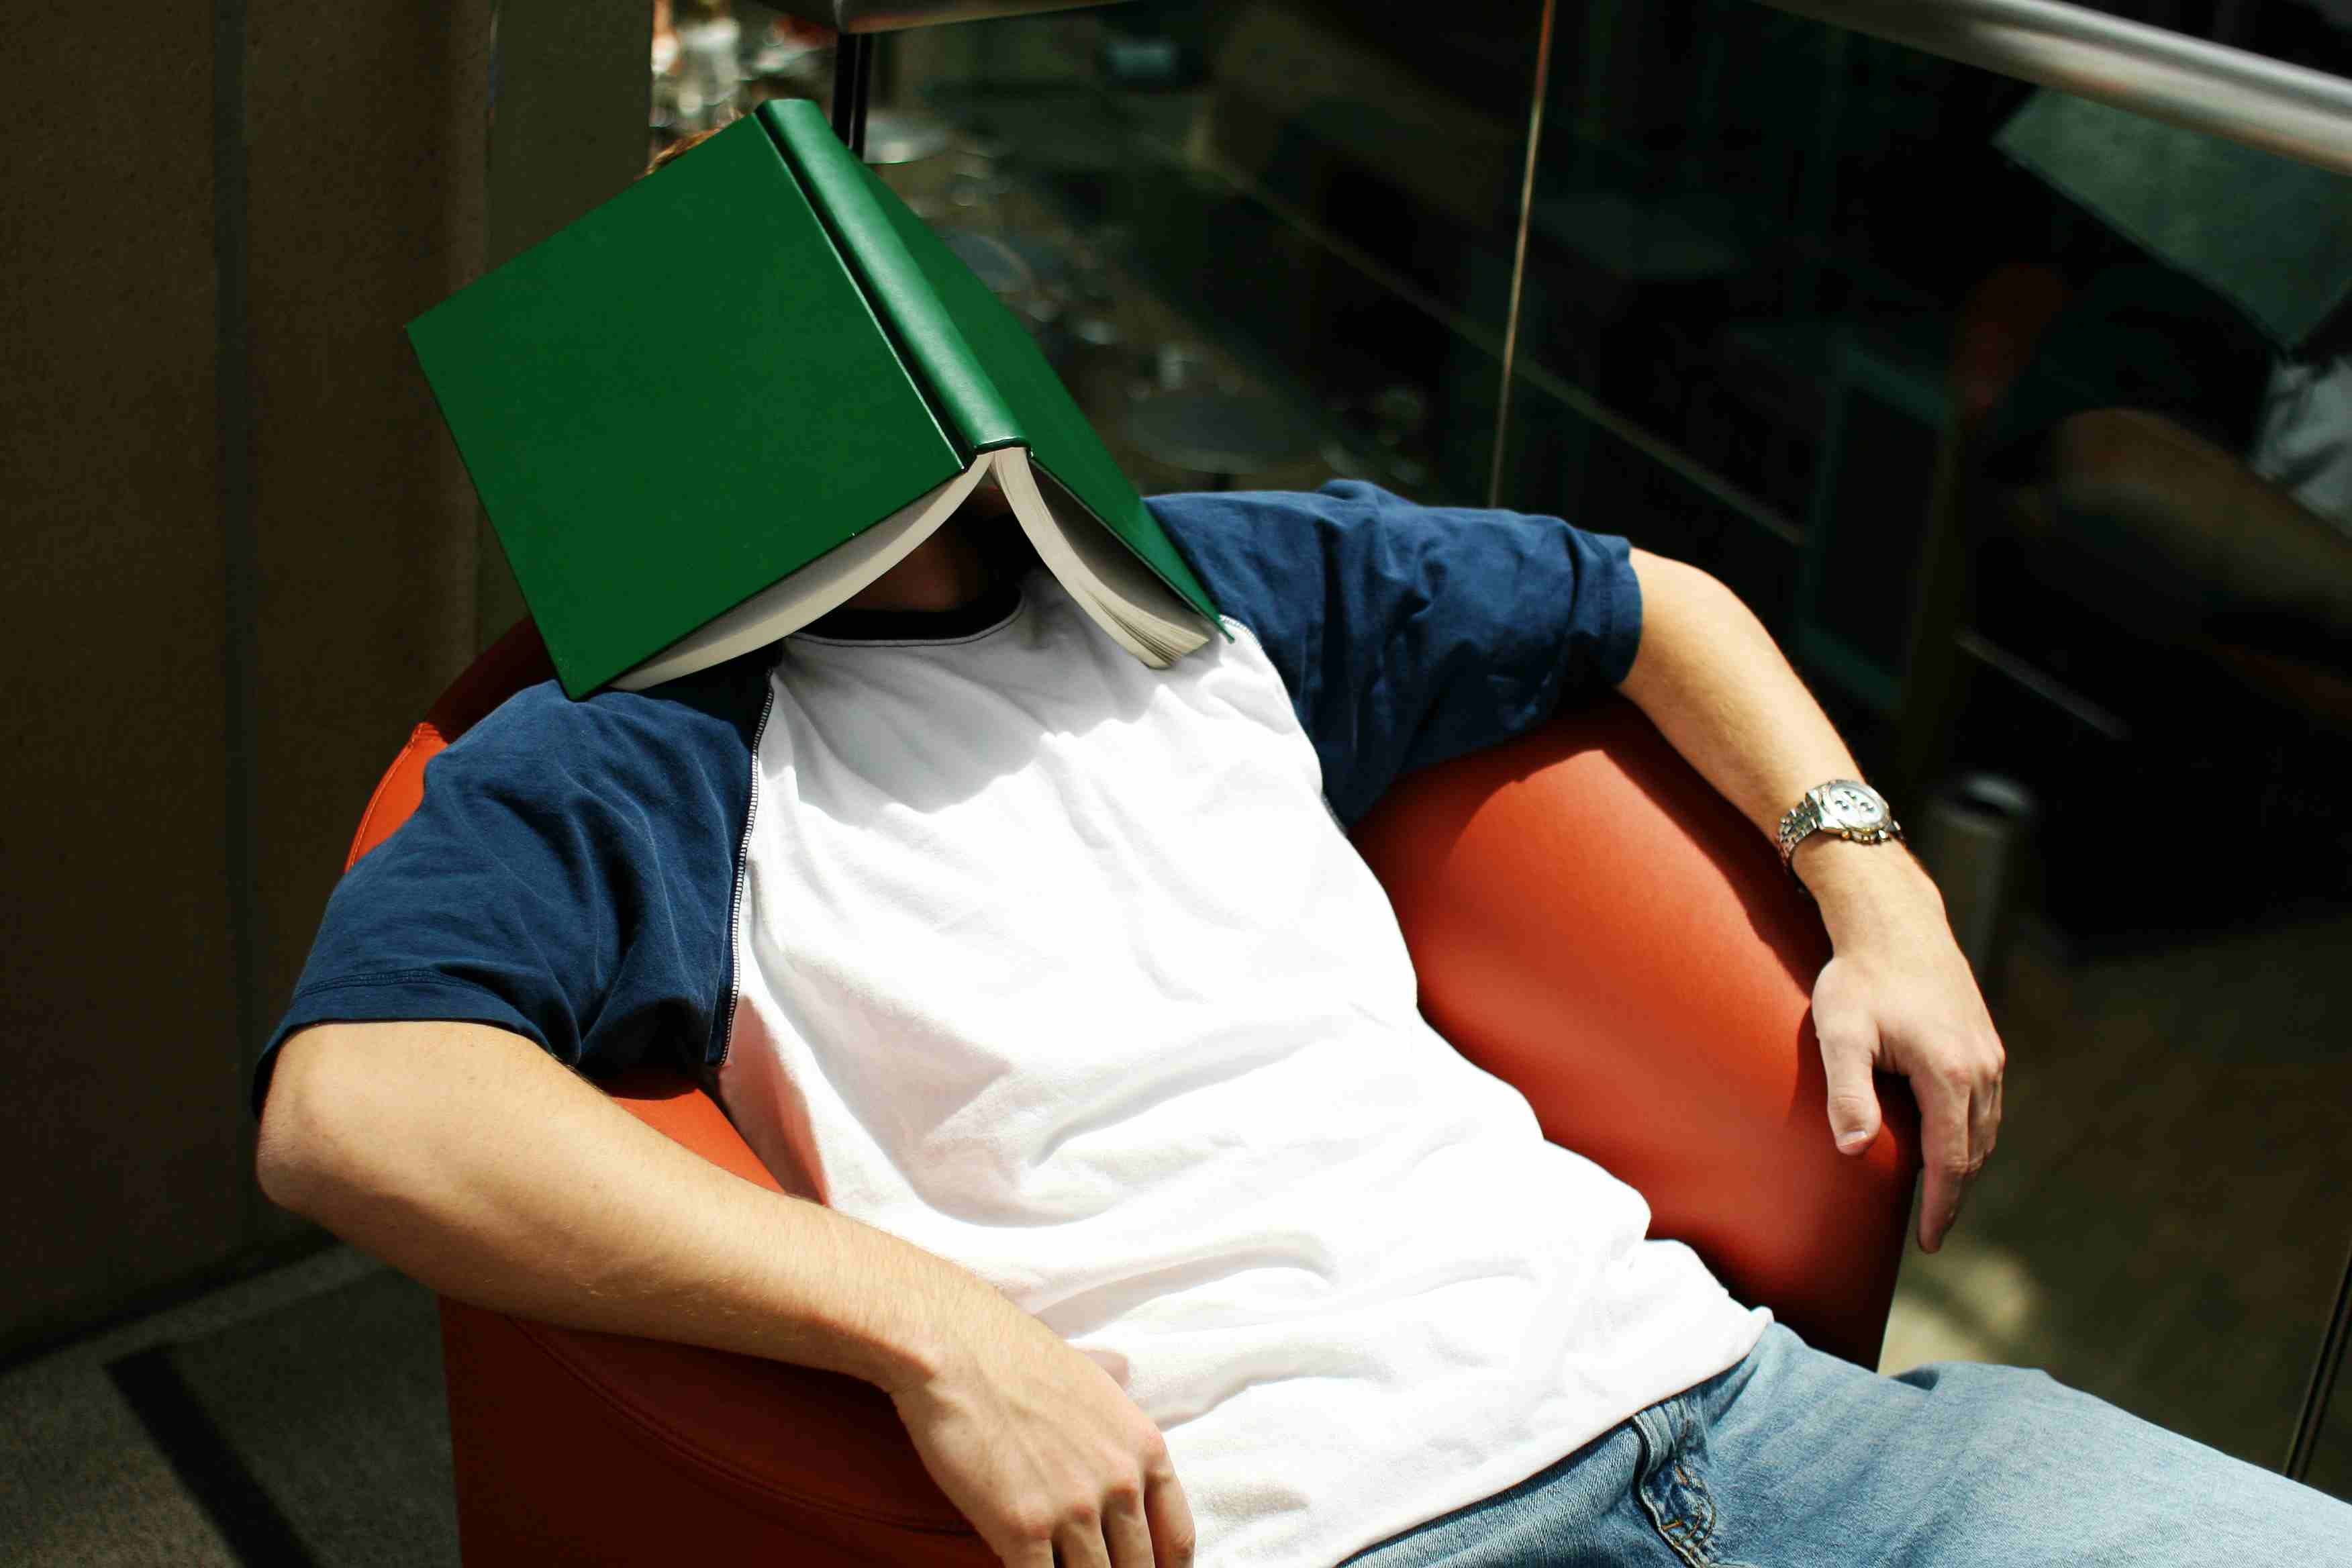 Exhausted student with book on his head